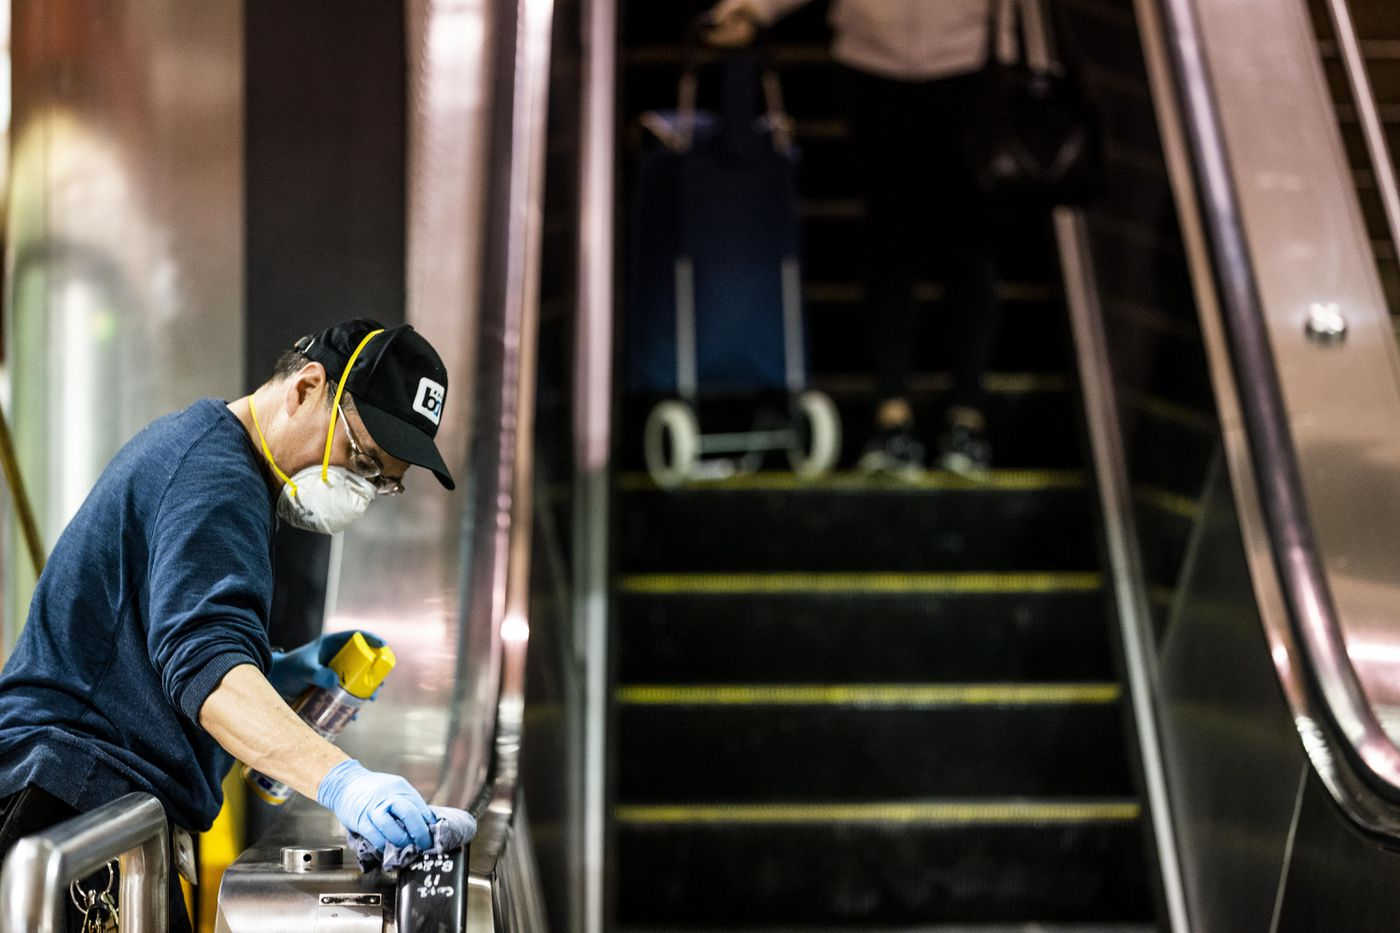 A worker disinfects an elevator as part of the BART system in San Francisco. Washington Post photo by Melina Mara